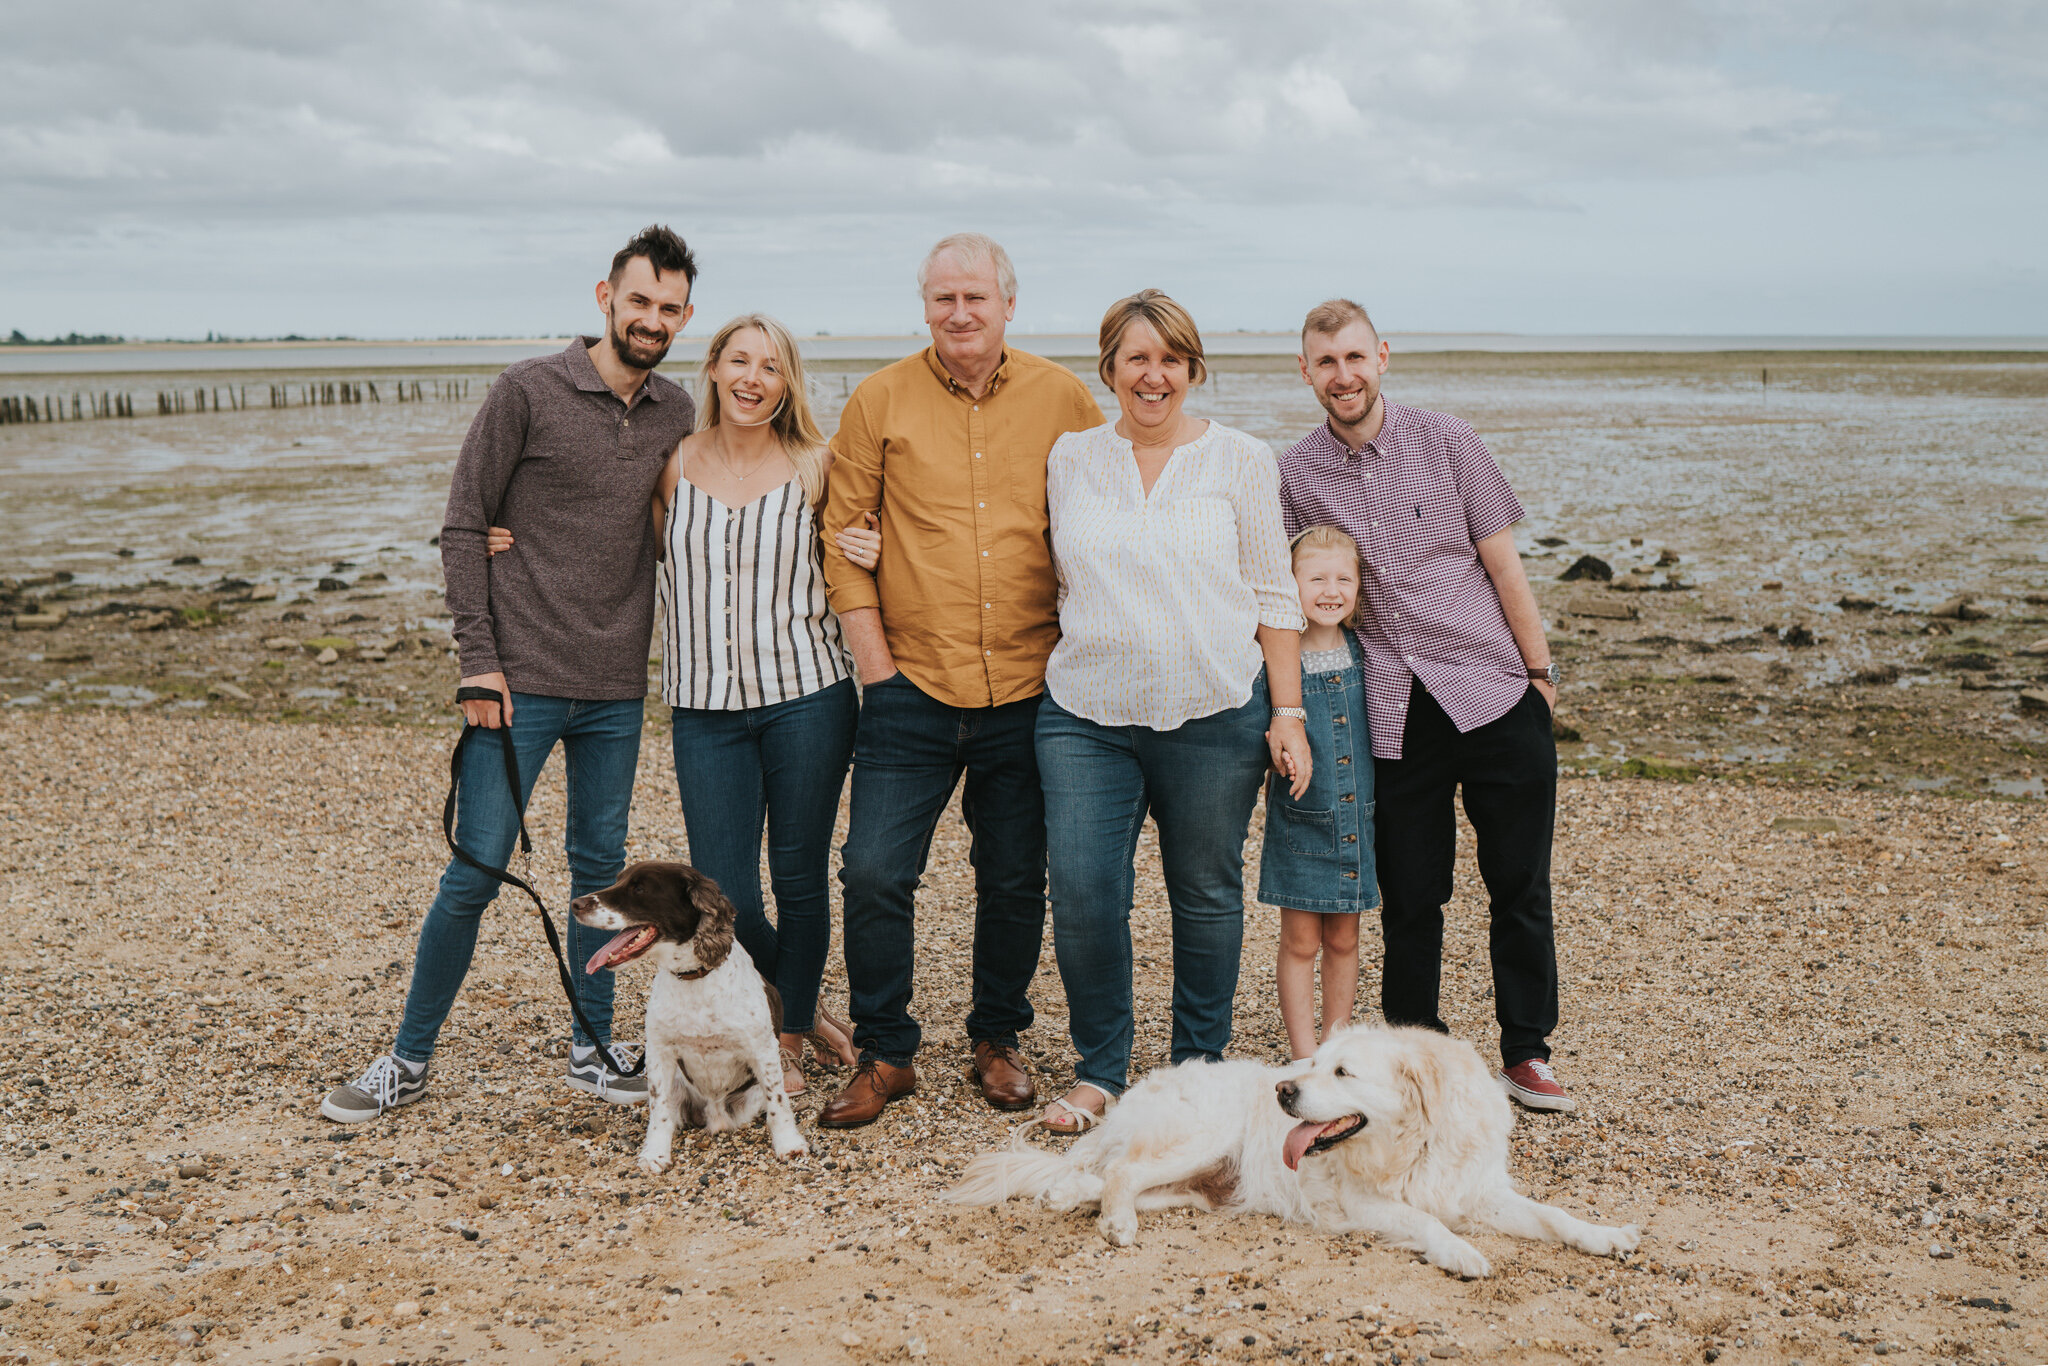 celebratory-beach-family-session-thomson-family-cudmore-grove-east-mersea-grace-elizabeth-colchester-essex-devon-suffolk-and-norfolk-alternative-wedding-and-family-photographer (2 of 53).jpg